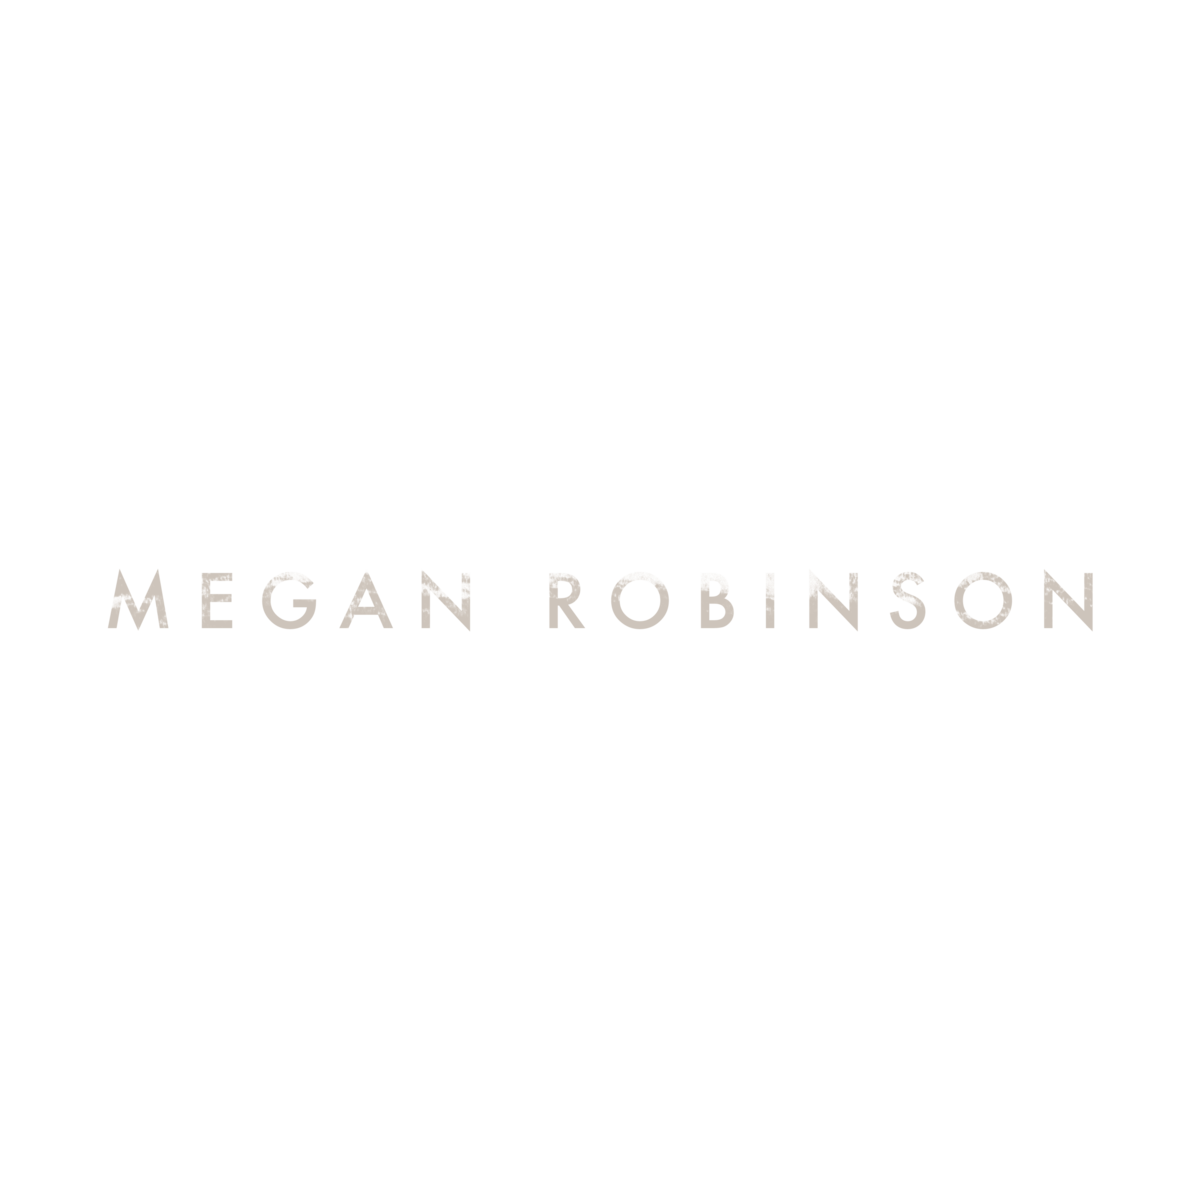 meganrobinson_frosted_main_logo